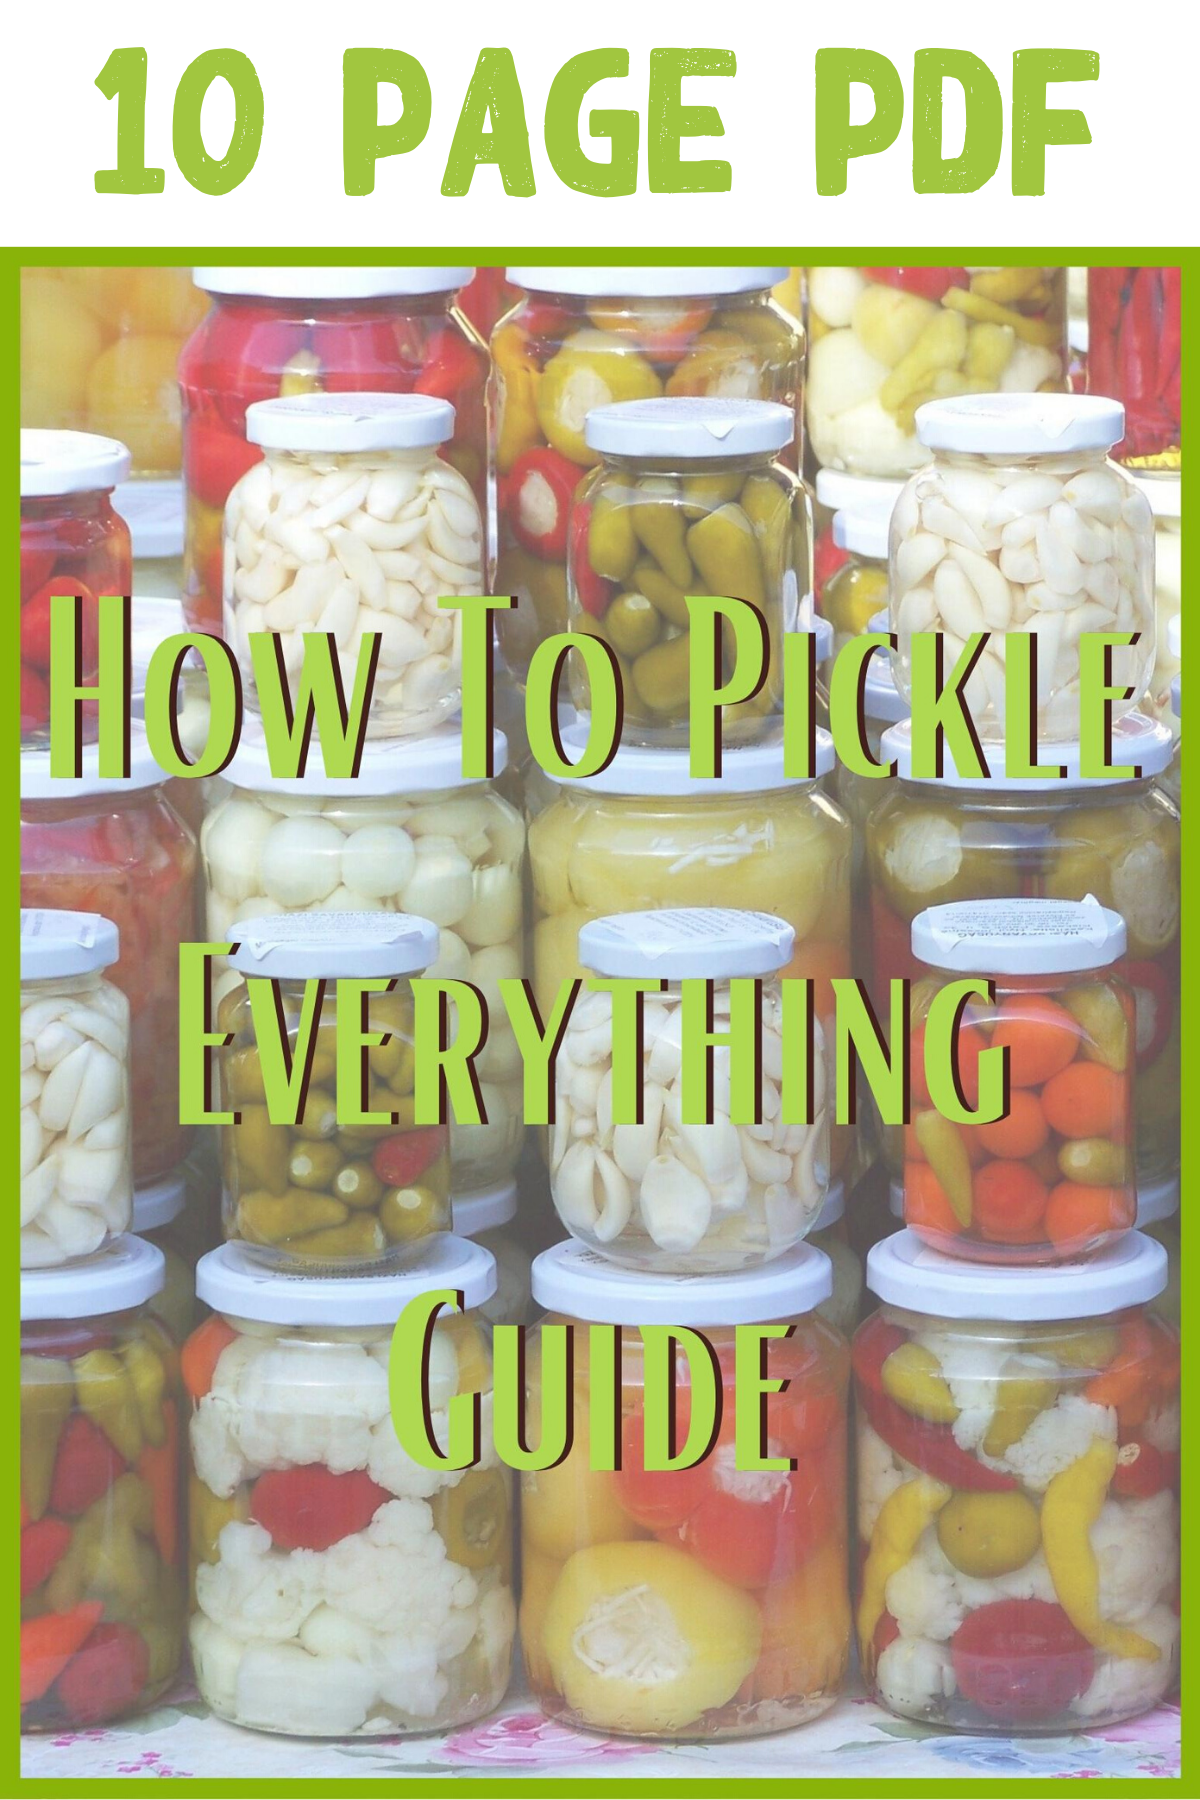 How to Pickle Everything Guide - Quick Pickled Vegetables & More